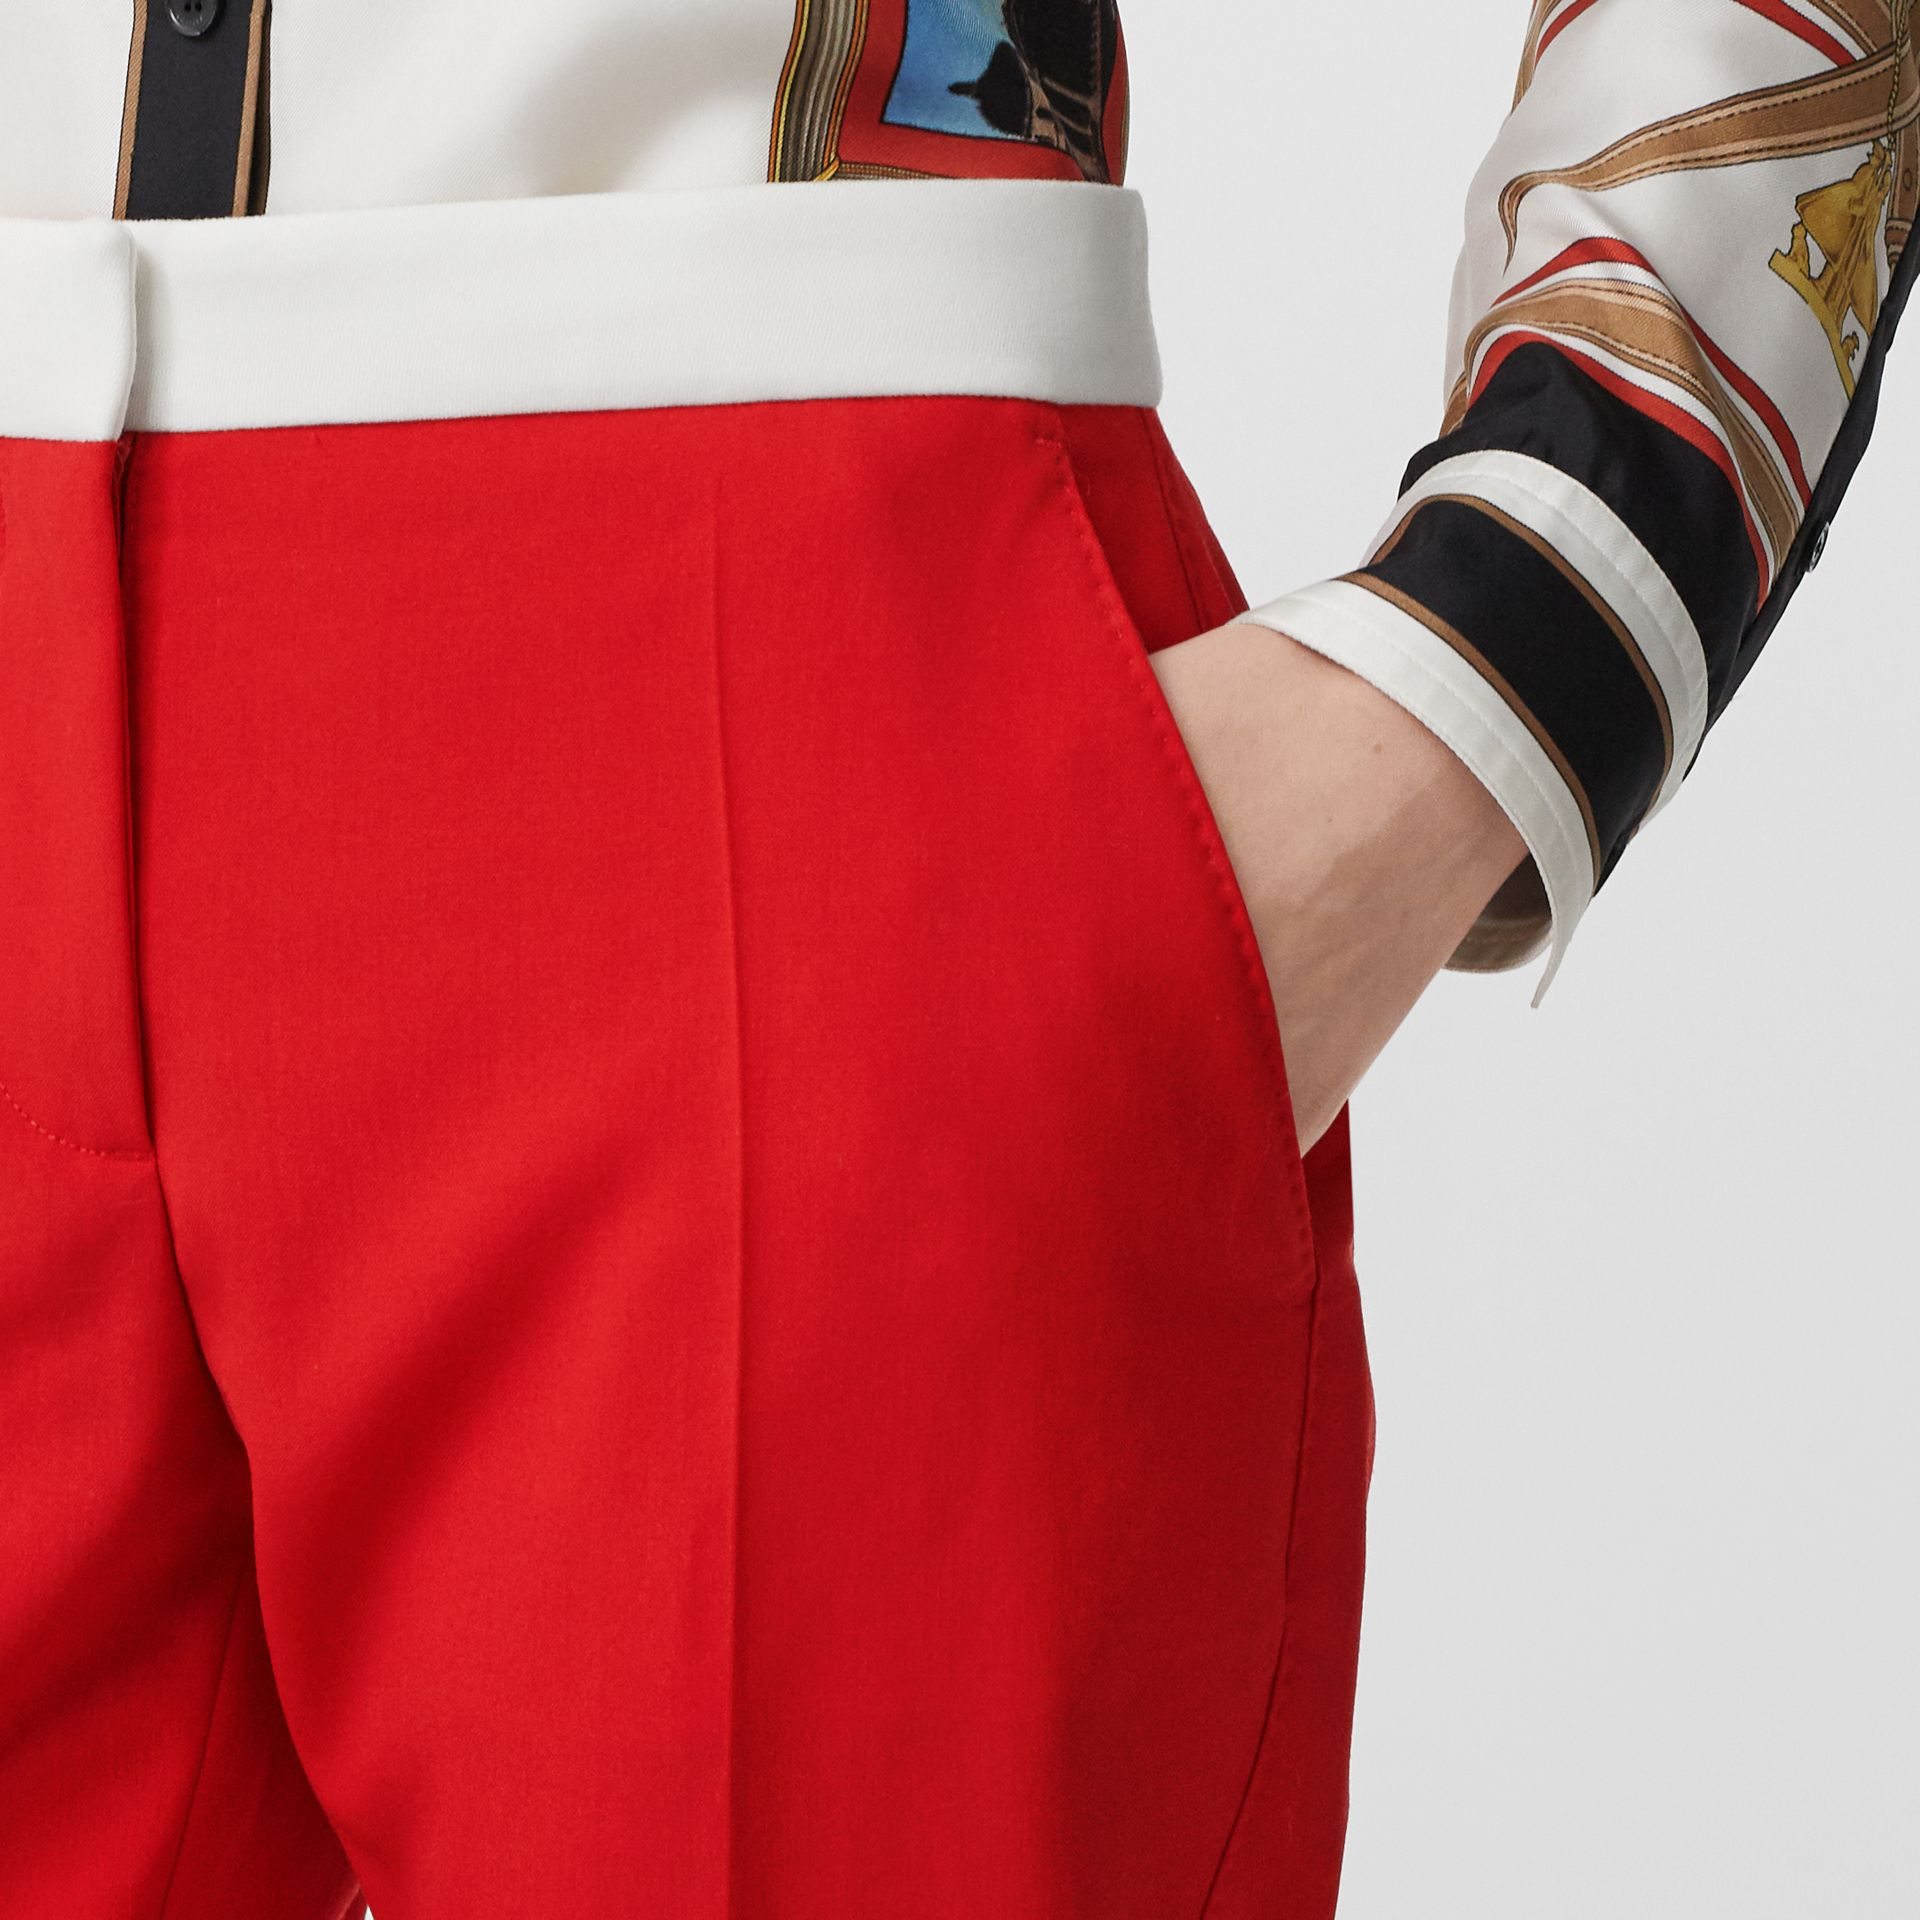 Two-tone Wool Tailored Trousers in Bright Red - Women | Burberry Canada - gallery image 1